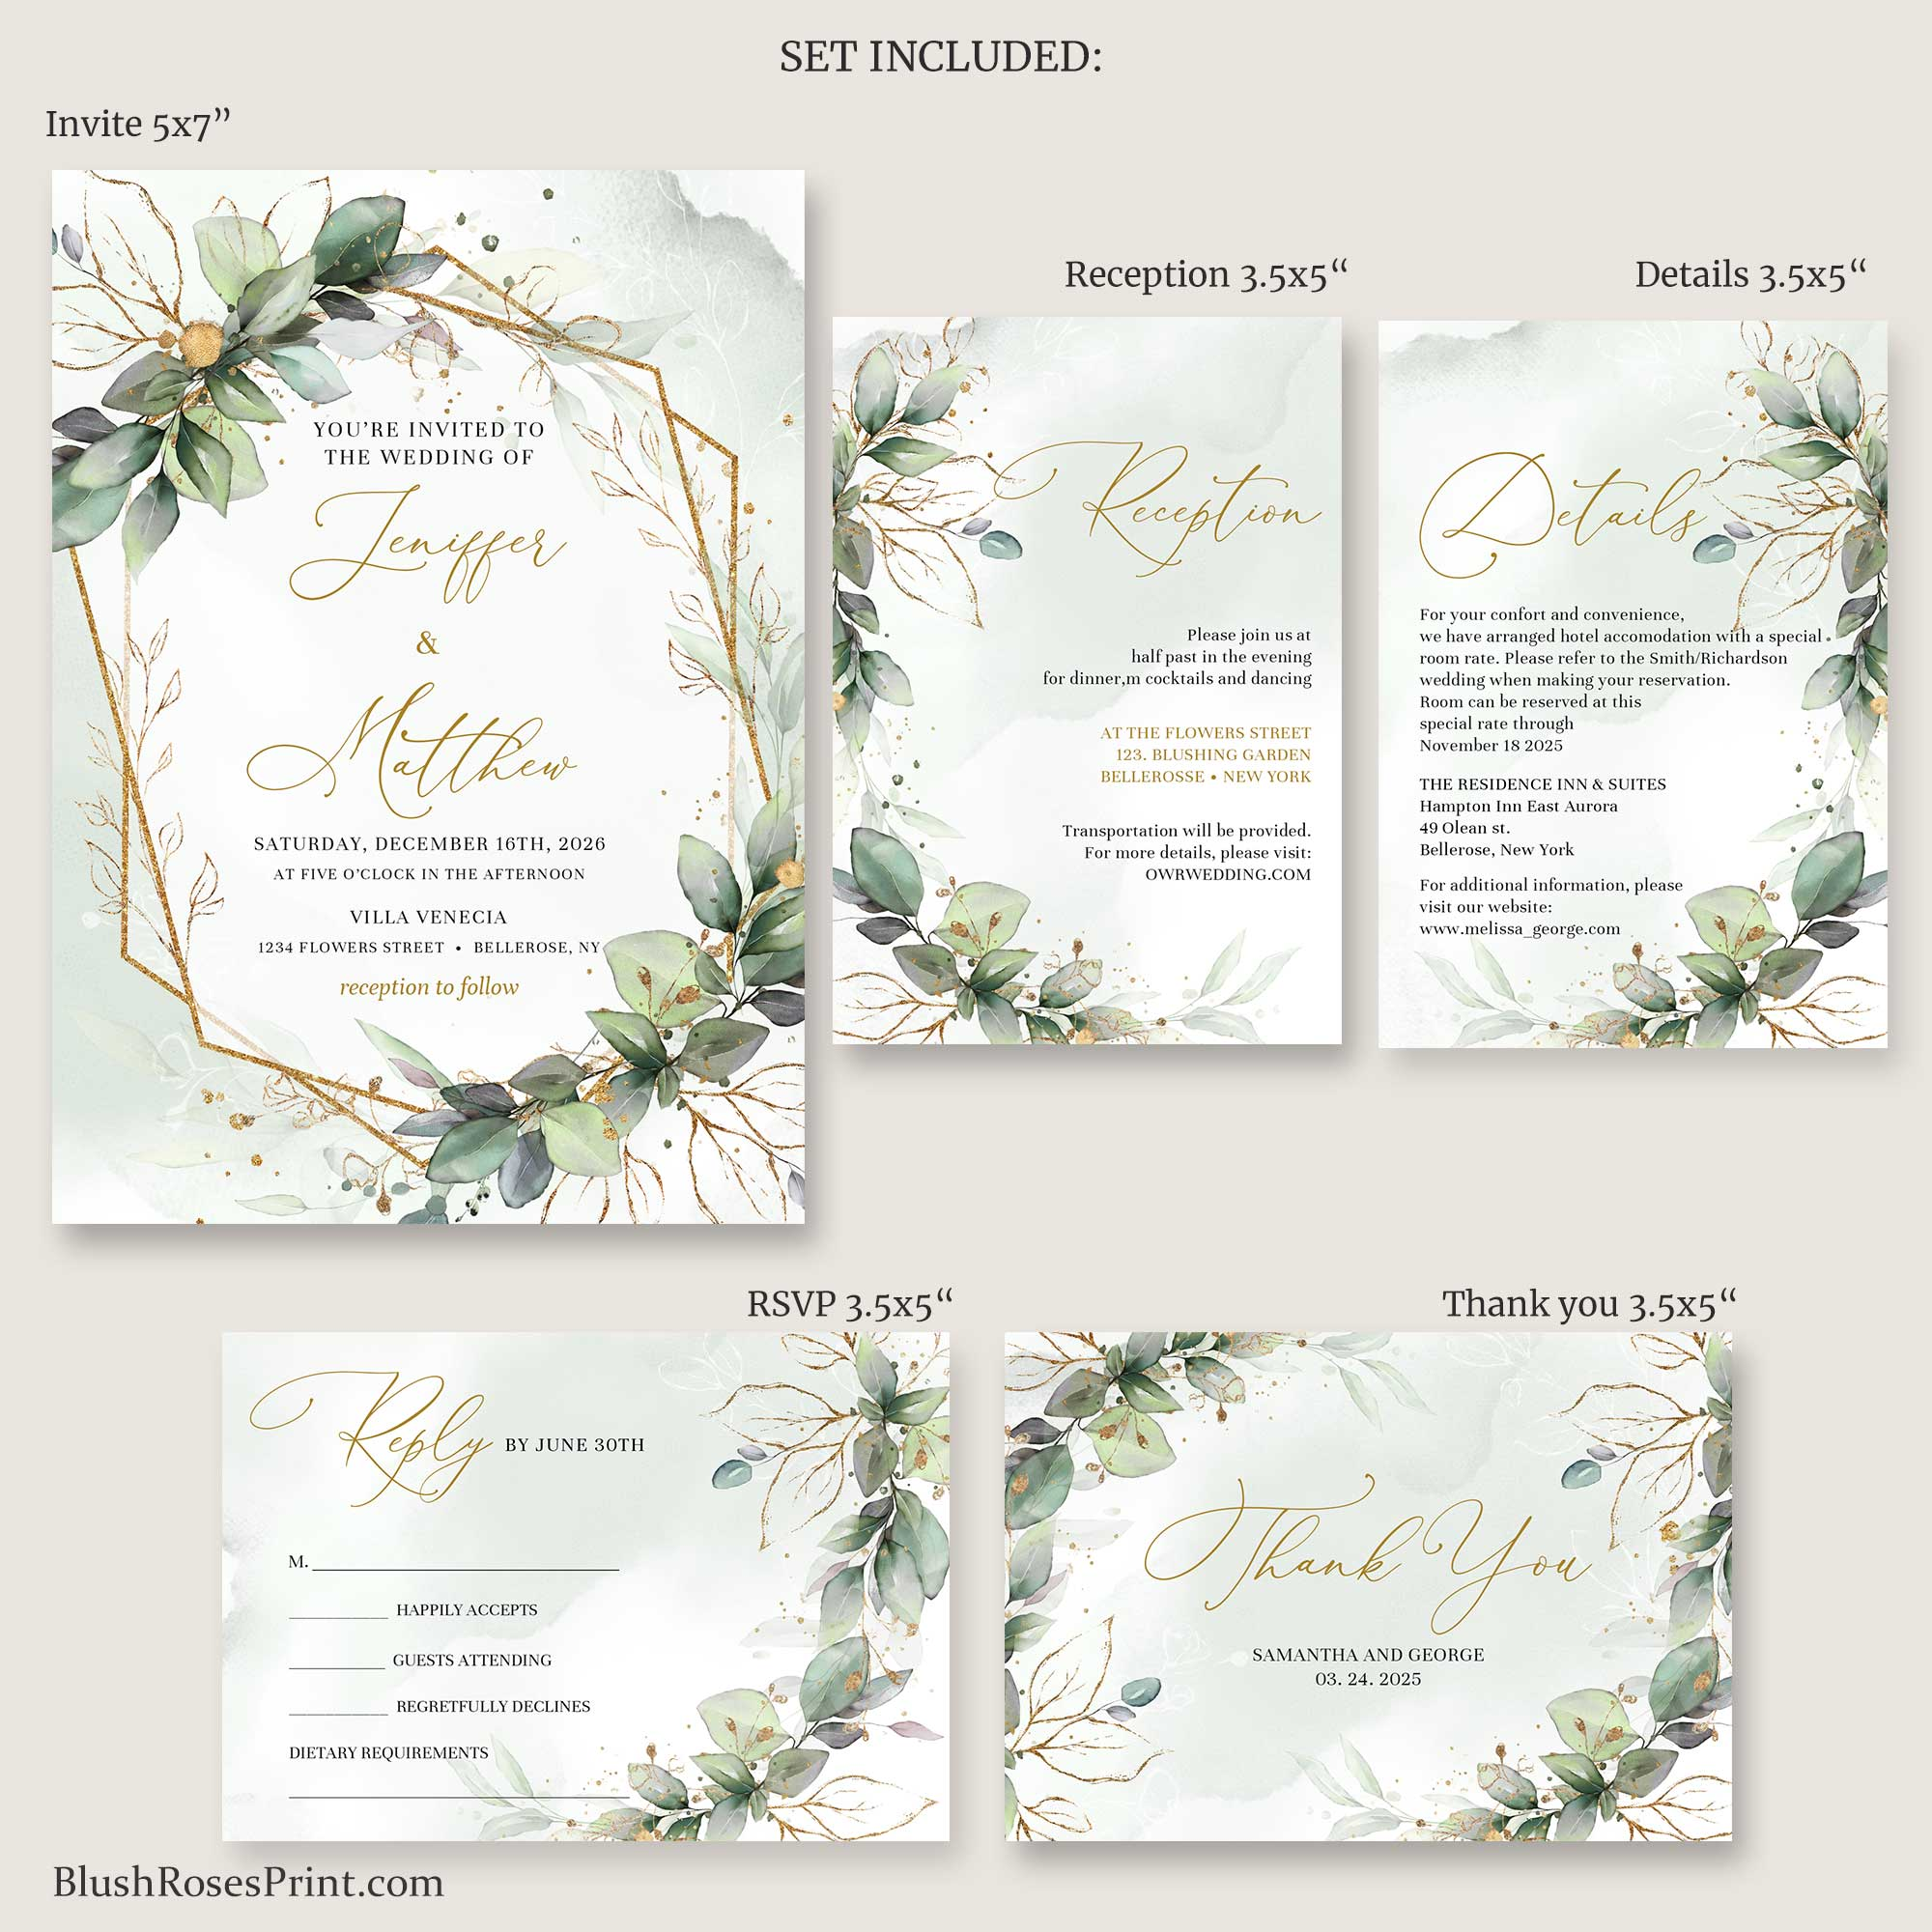 JOO -Rustic Greenery Wedding Suite, DIGITAL or PRINTING Wedding Set, Greenery Foliage Wedding Invite, Green and Faux Gold, Gold Geometric